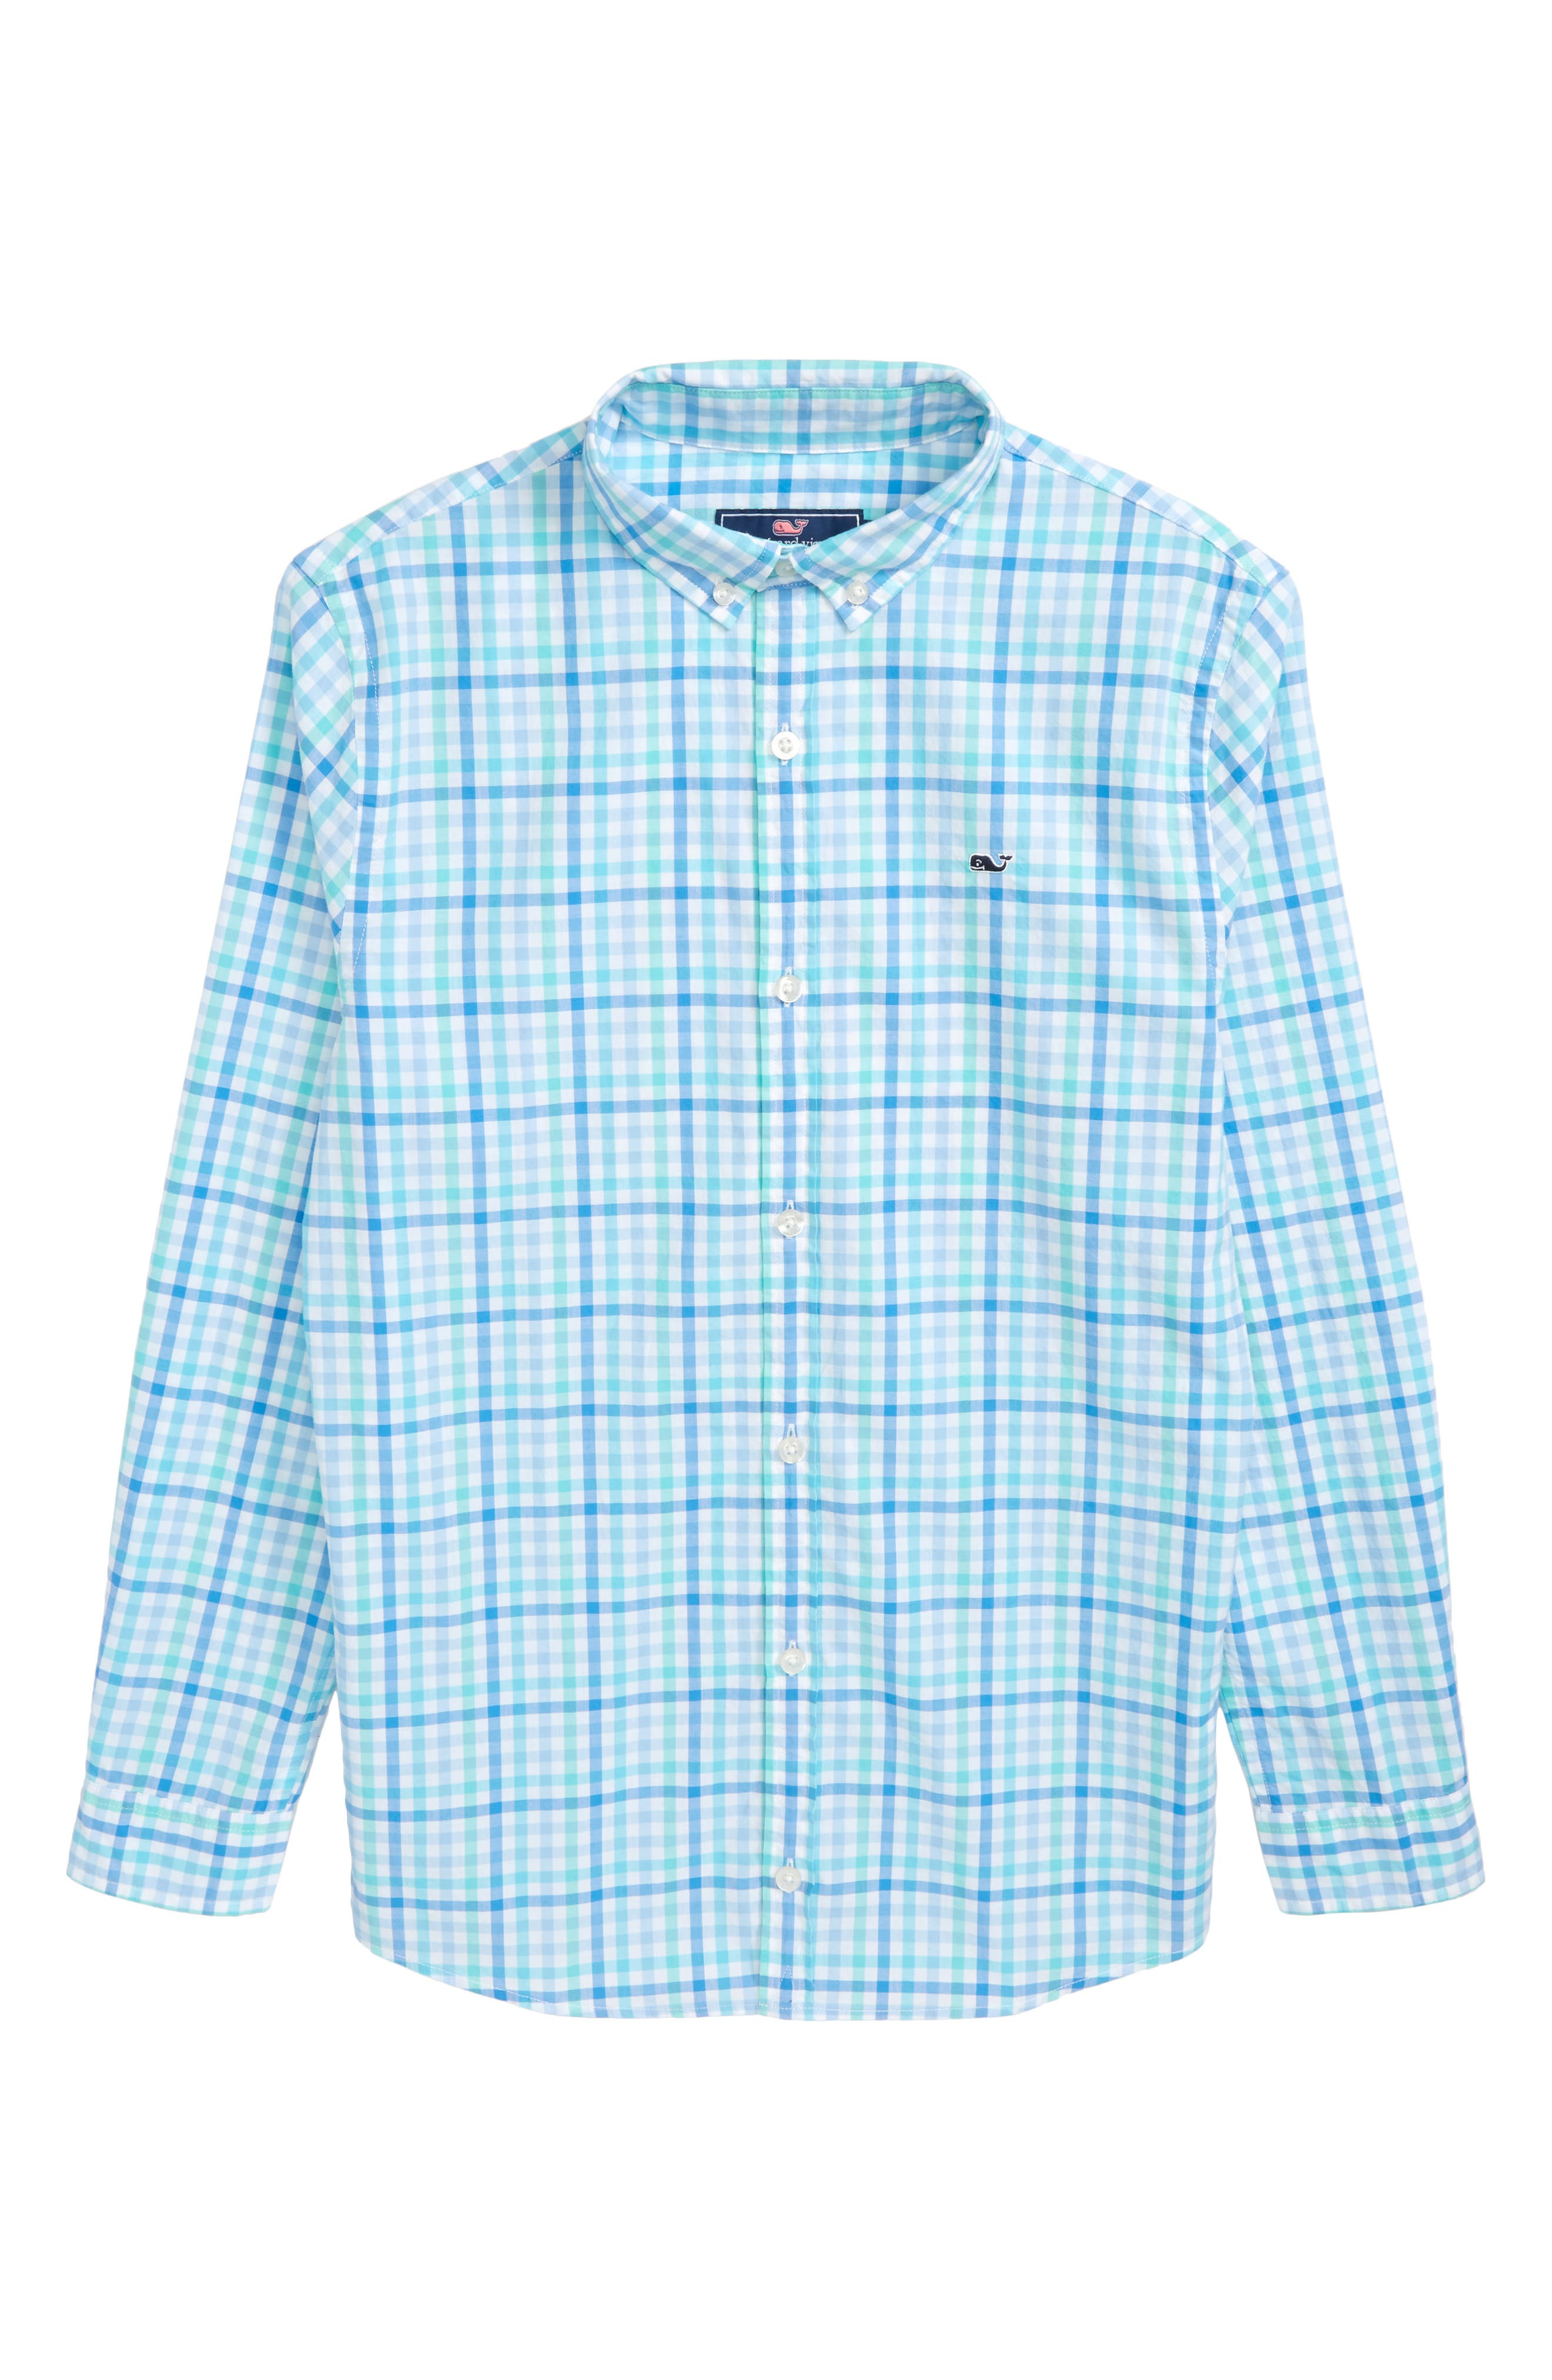 Alternate Image 1 Selected - vineyard vines Guana Cay Gingham Check Woven Shirt (Big Boys)